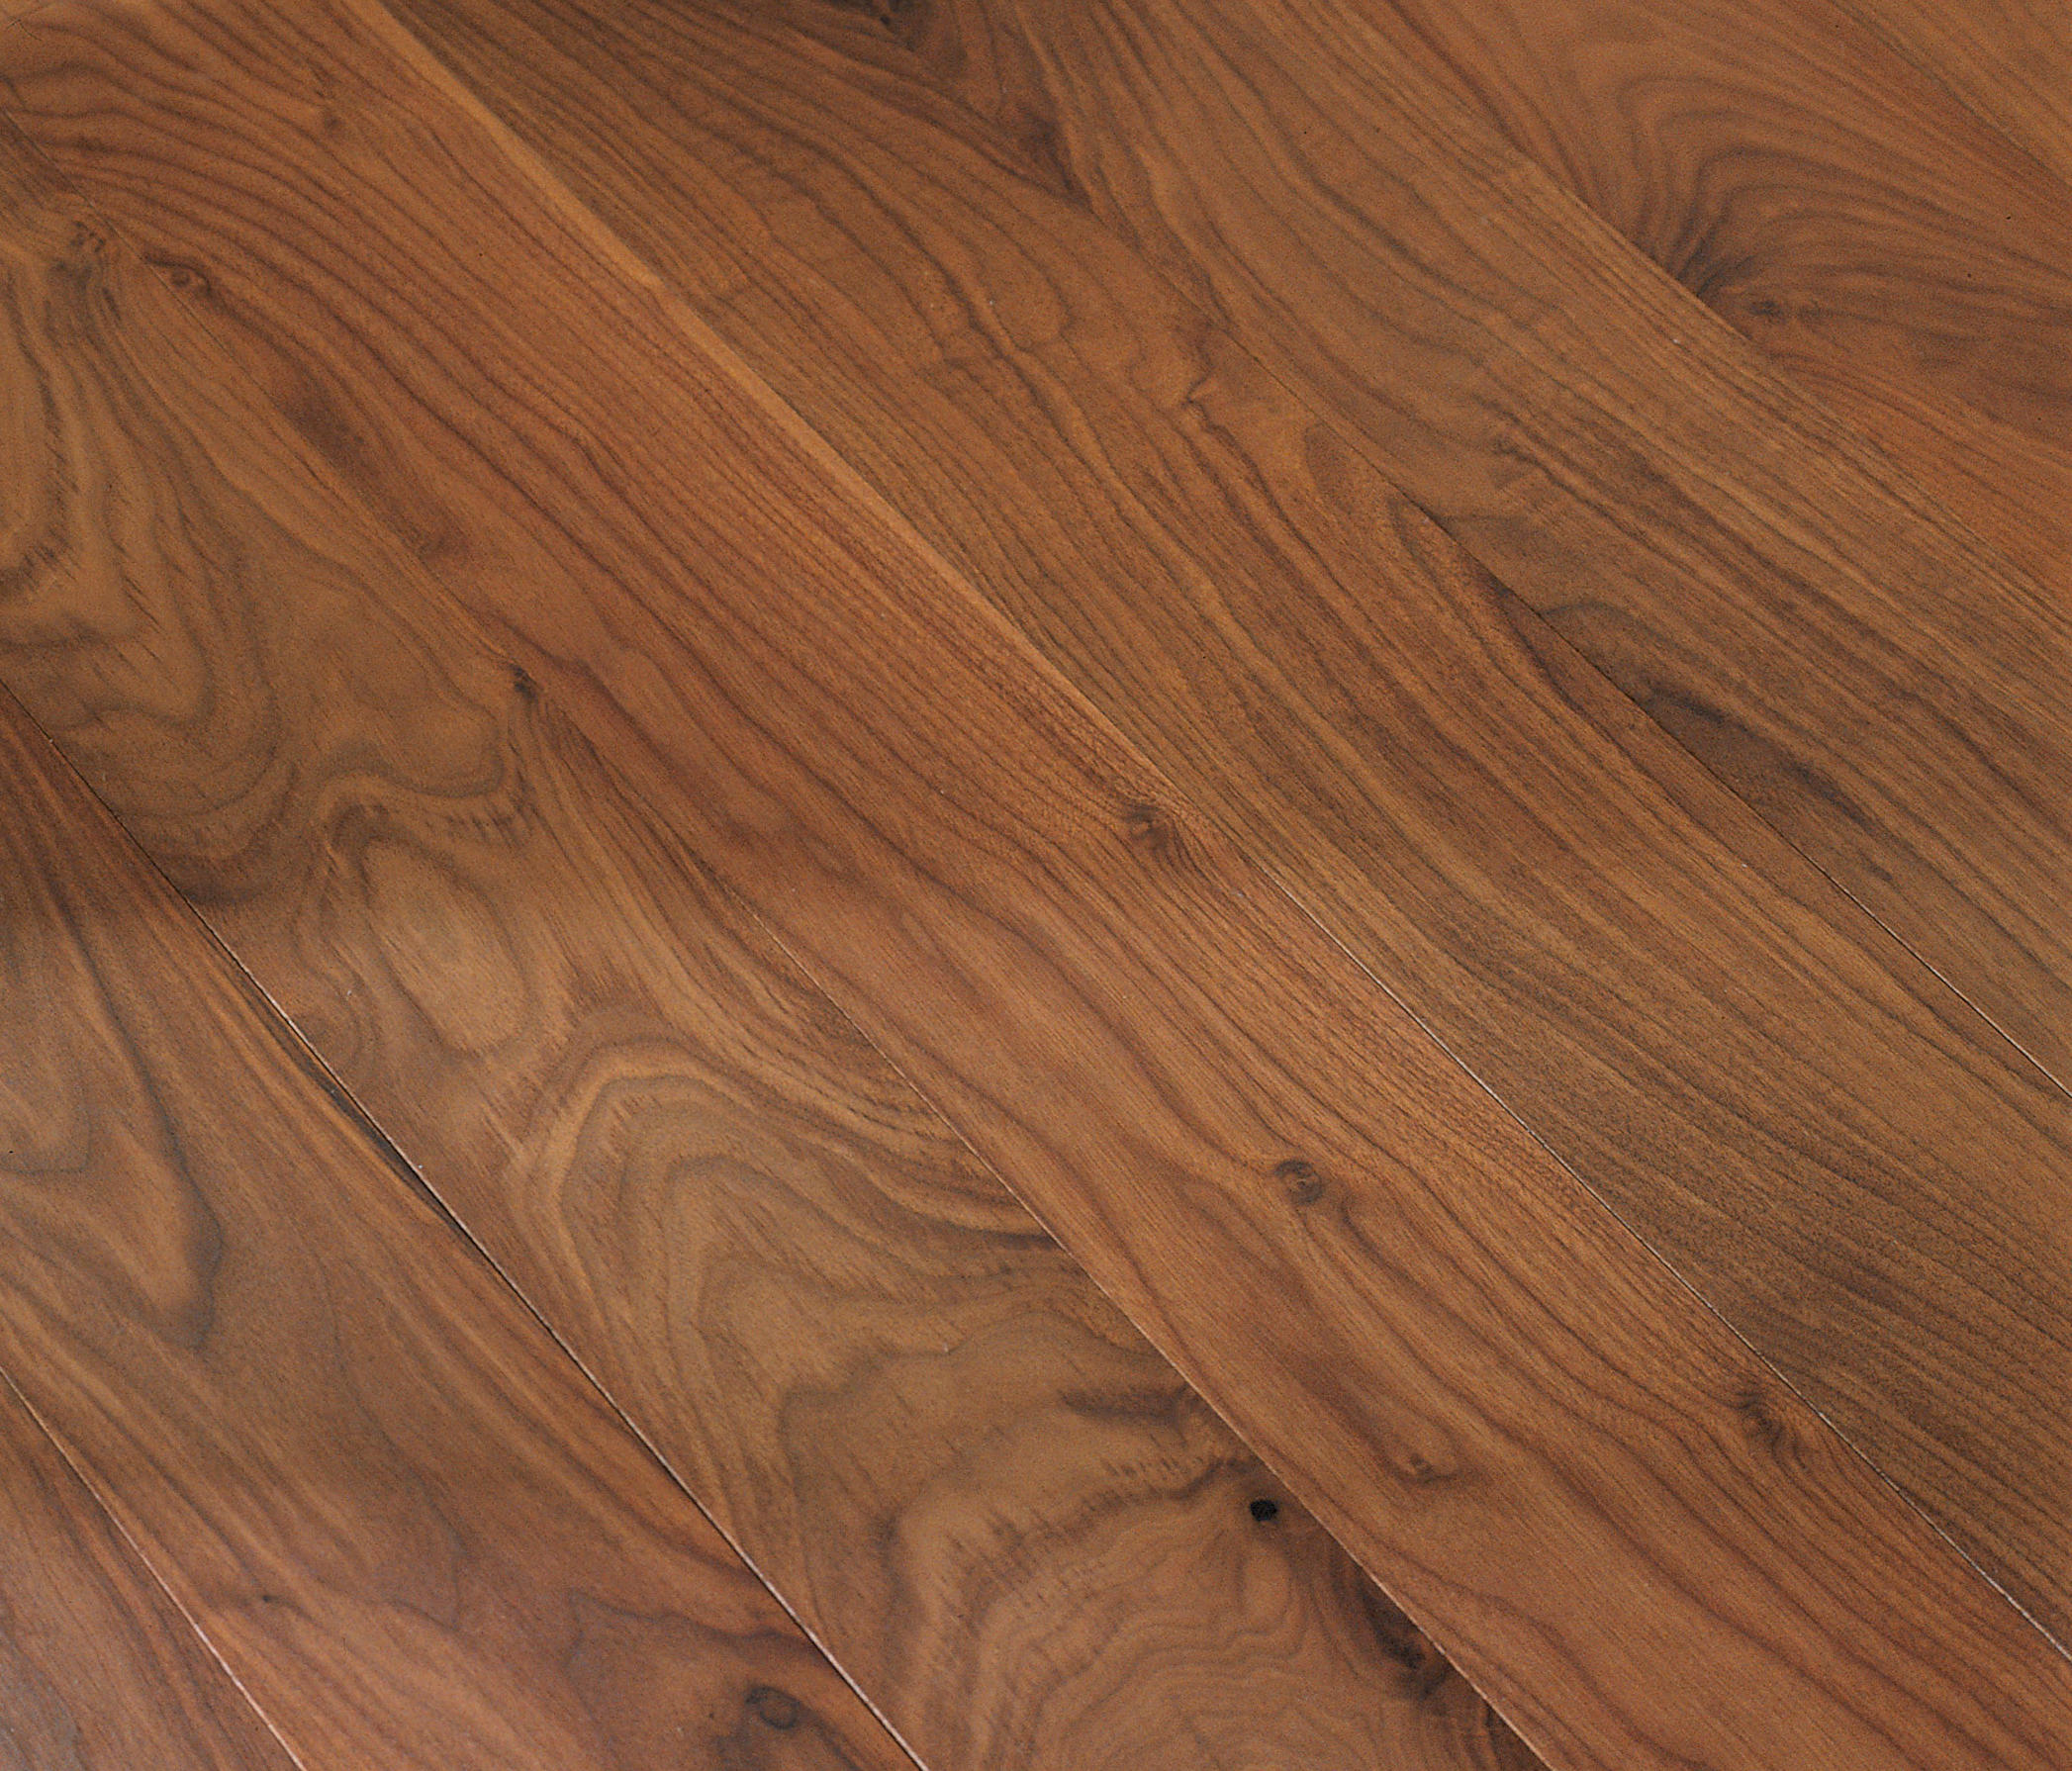 Armstrong wood flooring jobs armstrong wood floor cleaner for Armstrong wood flooring